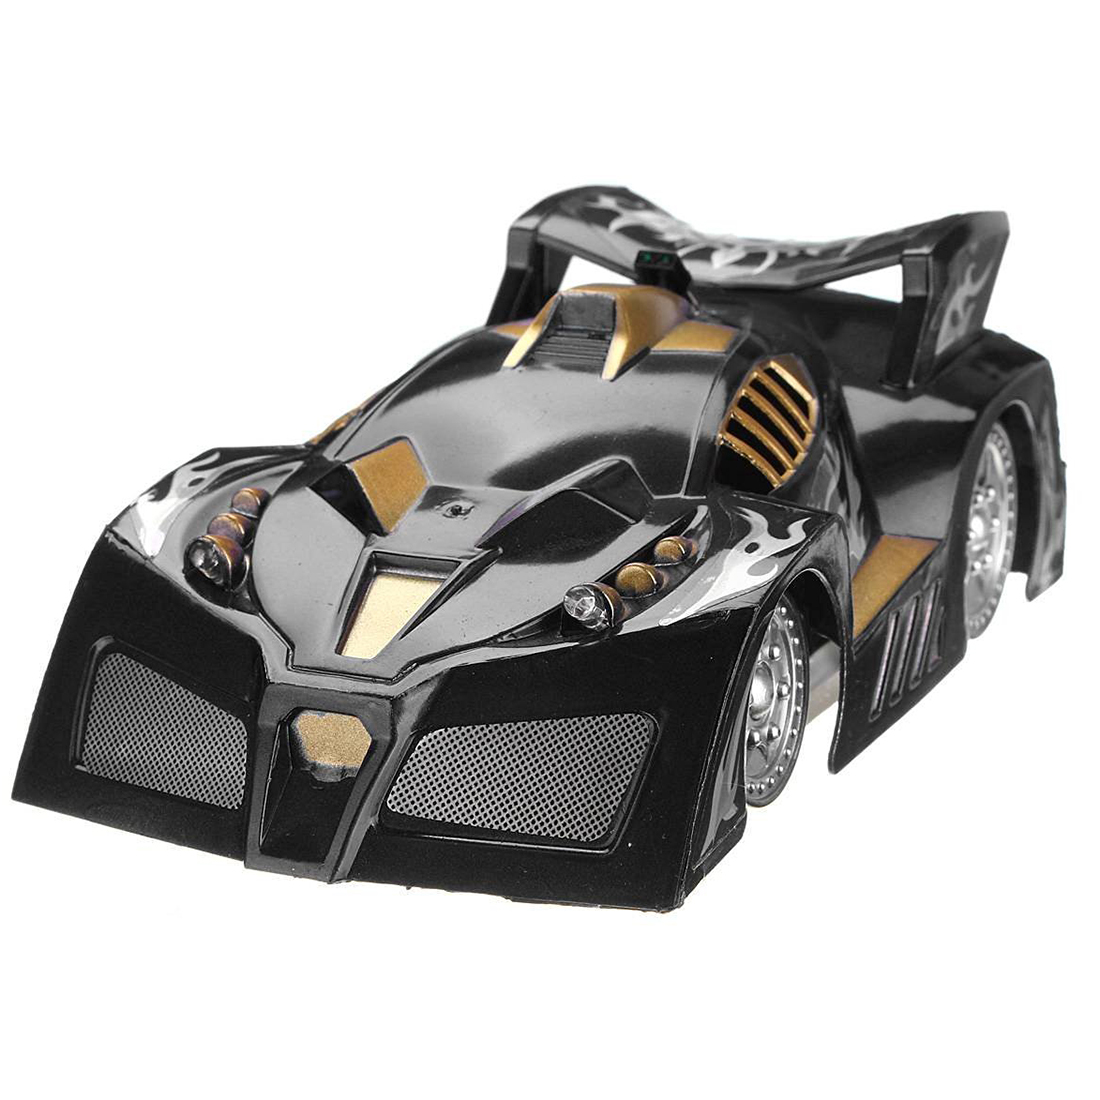 Mini RC Remote Controlled Wall Car Climbing Car Remote Control Toy Gift Climb Car Race Model Infrared black